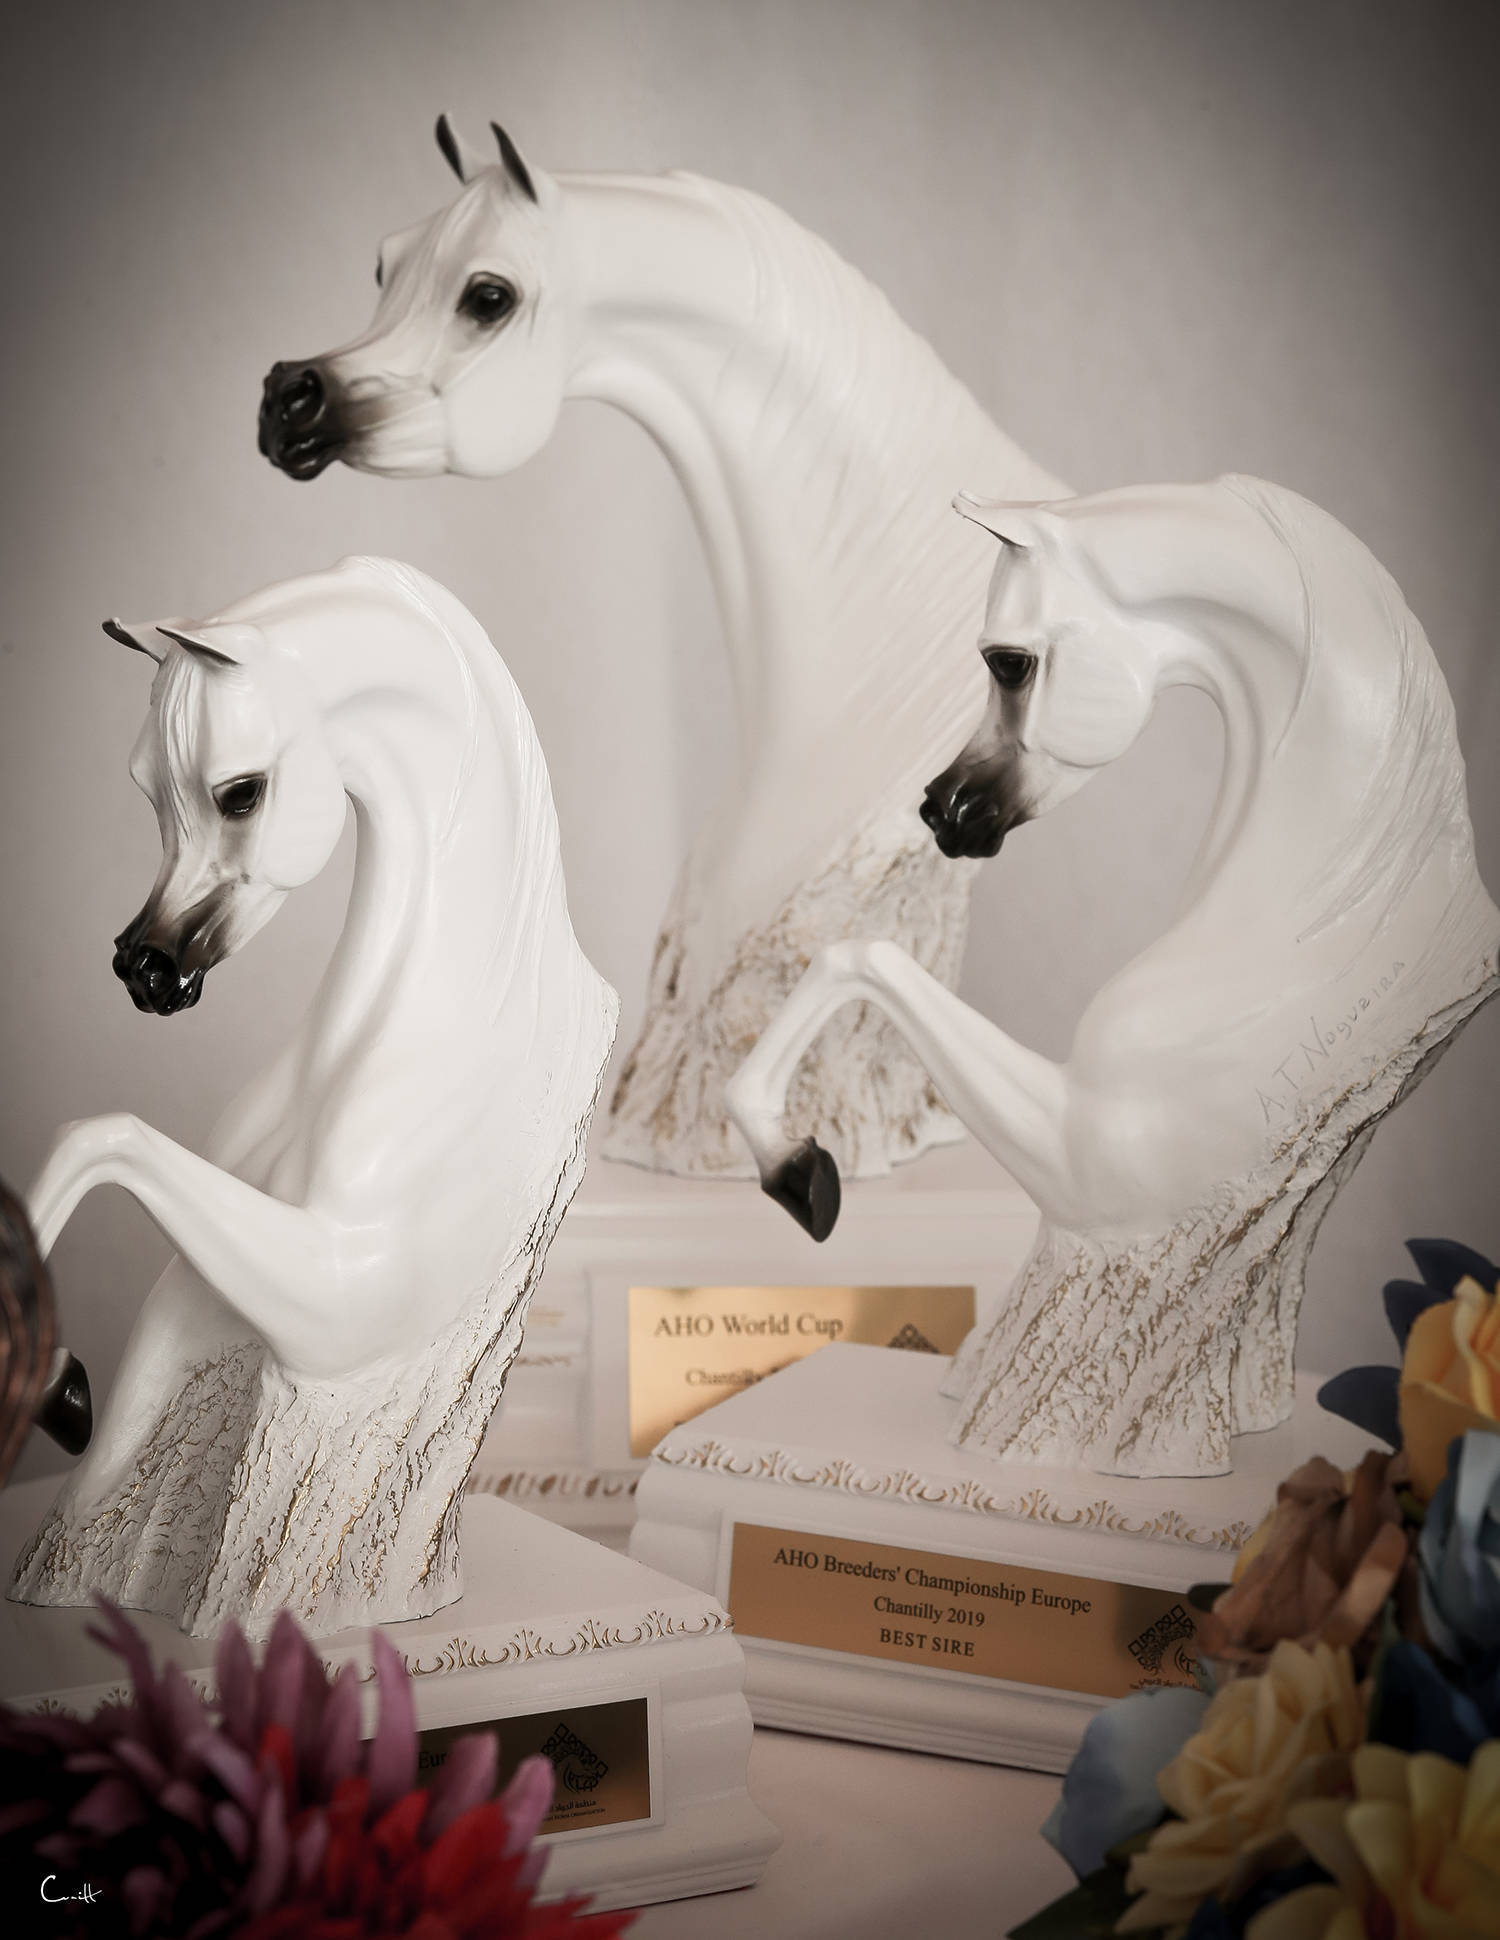 Special Trophy AHO Breeders' Championship Europe 2019 - Chantilly